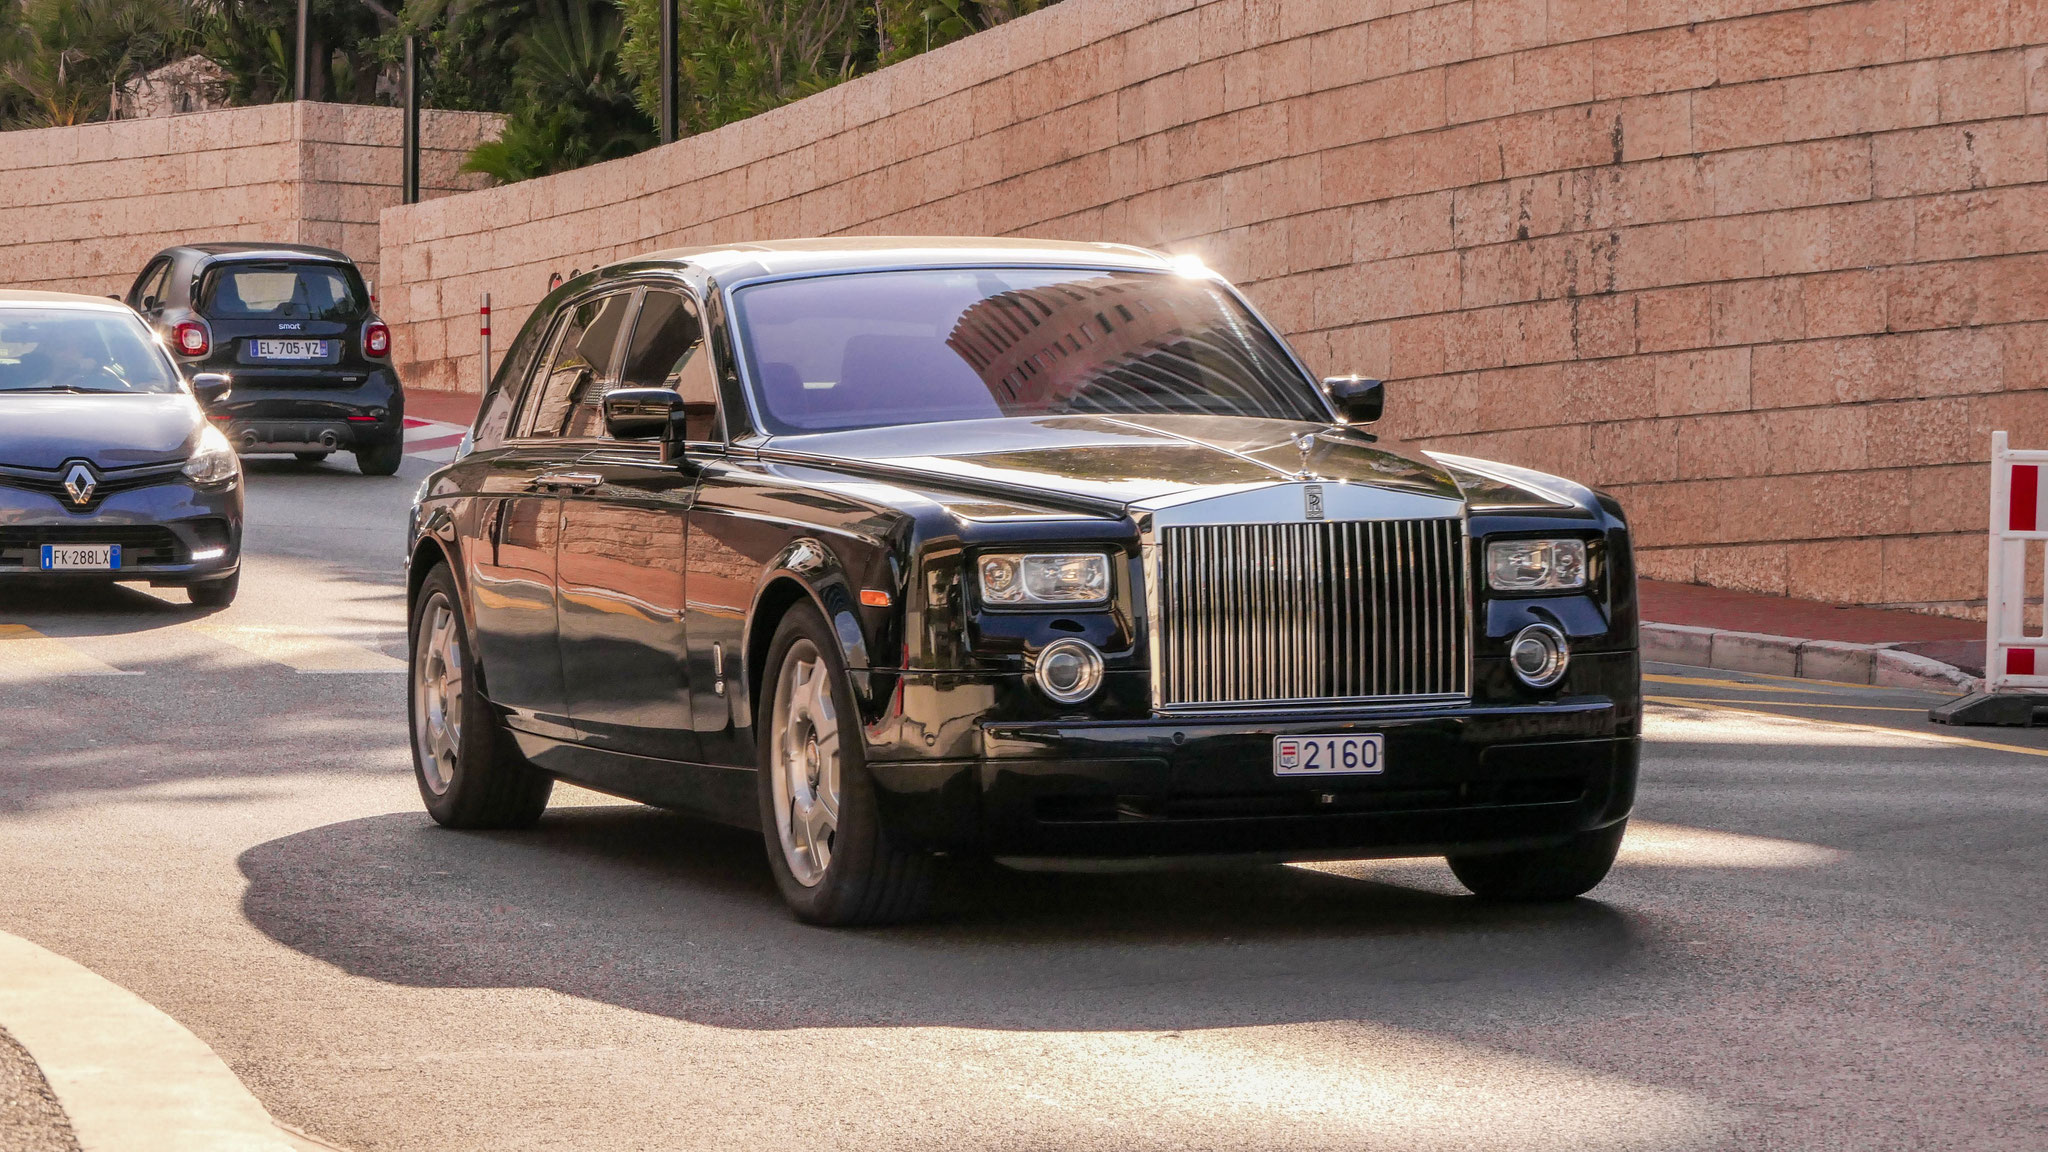 Rolls Royce Phantom - 2160 (MC)